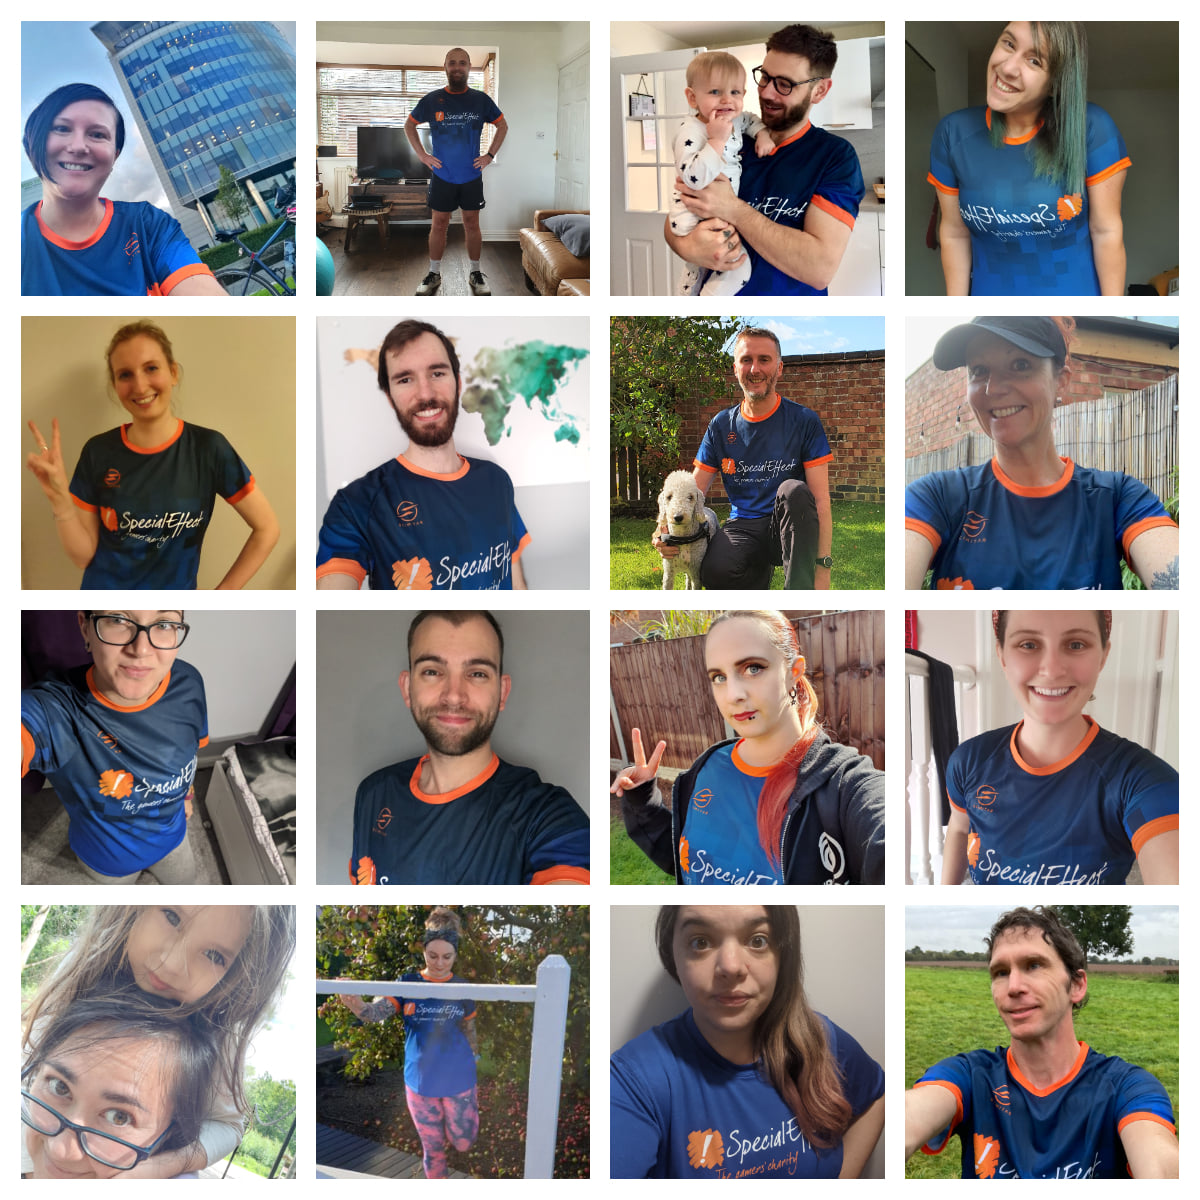 12 young people wearing SpecialEffect branded sports shirts